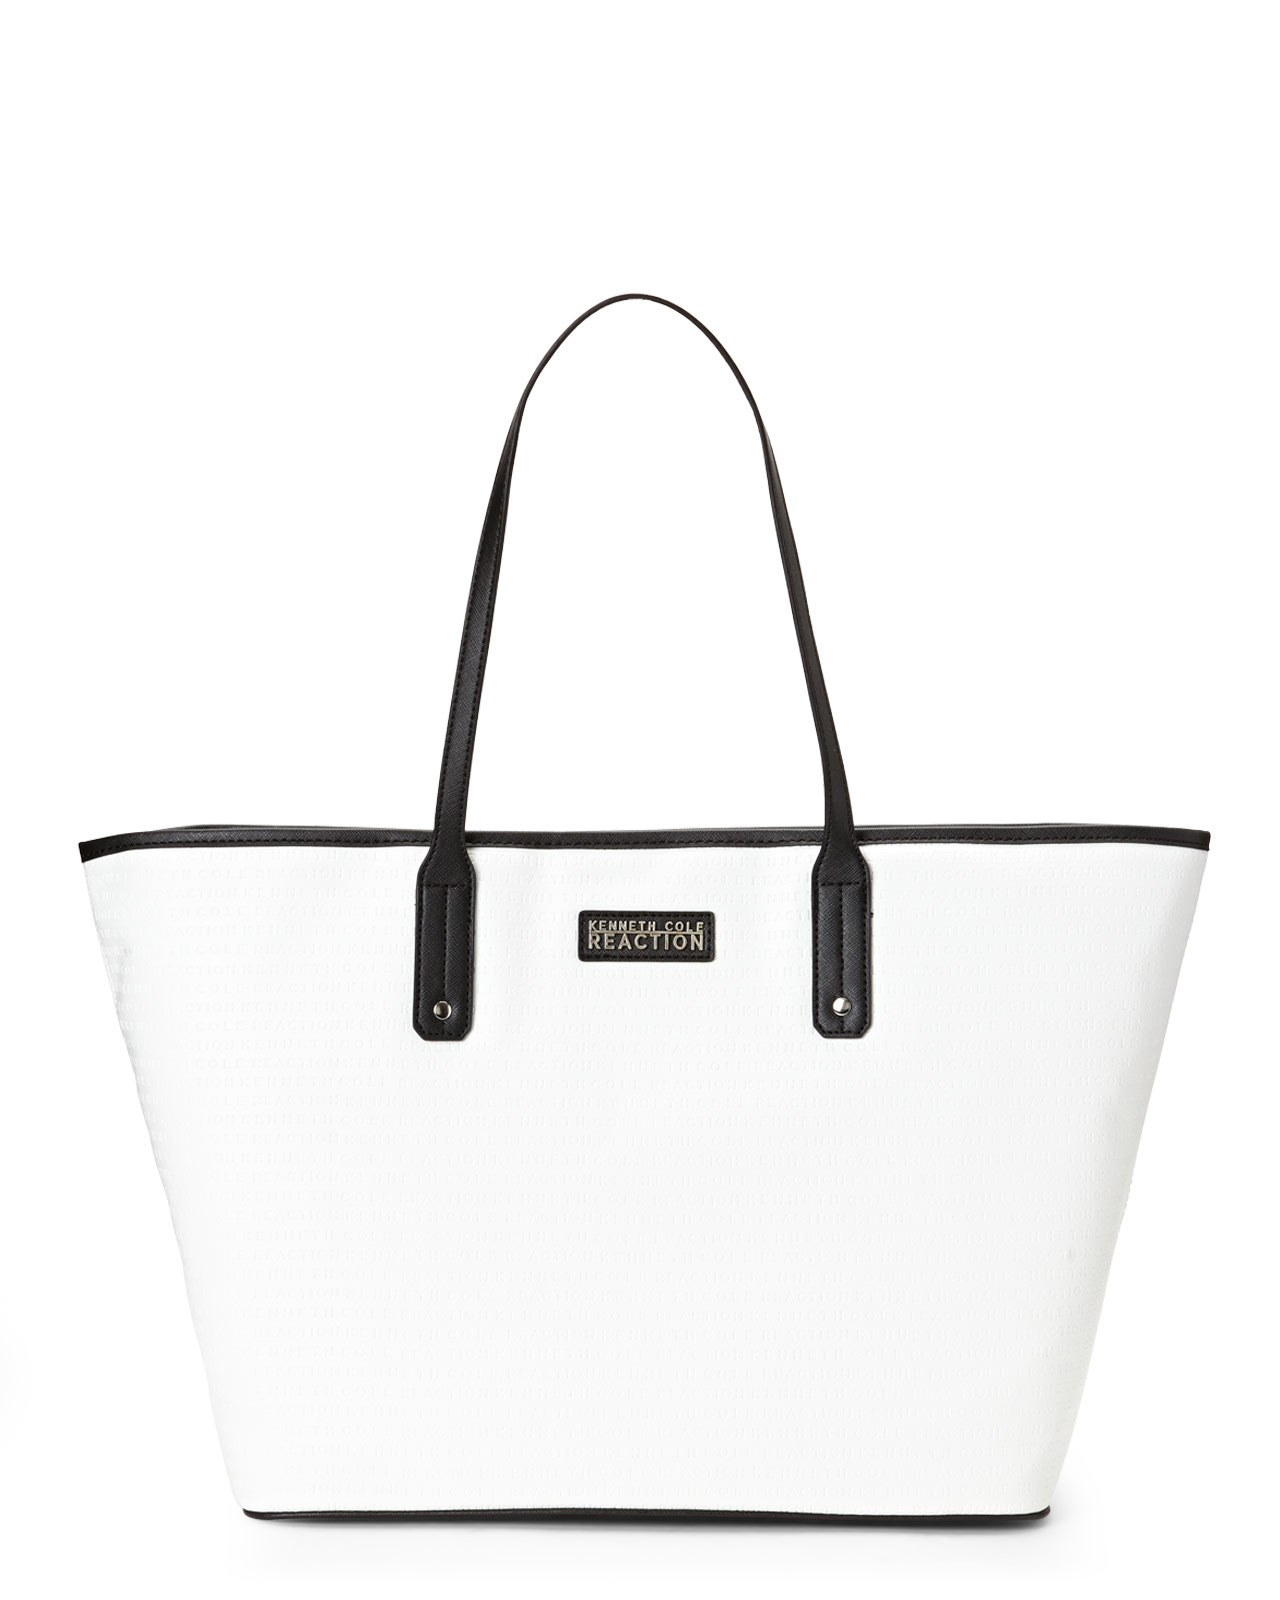 Kenneth Cole Reaction Tote Bag Jaba58f2